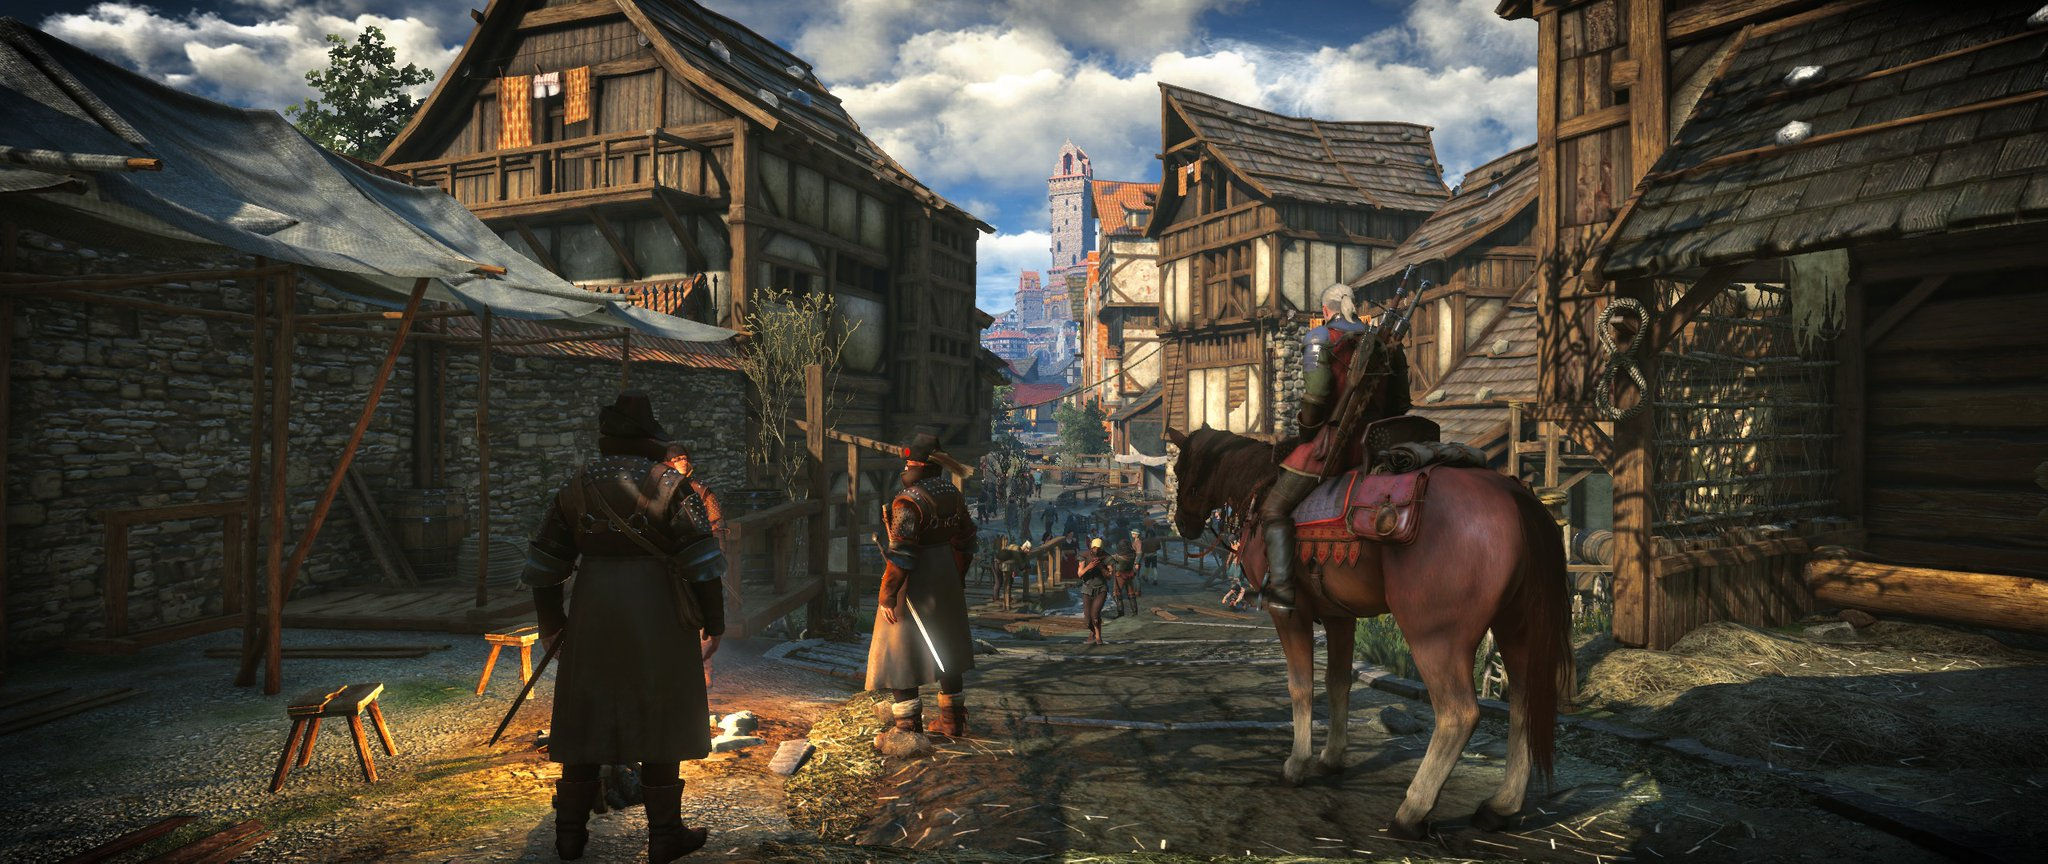 The Witcher 3 Super Turbo Lighting Mod 2 Gets New Preview